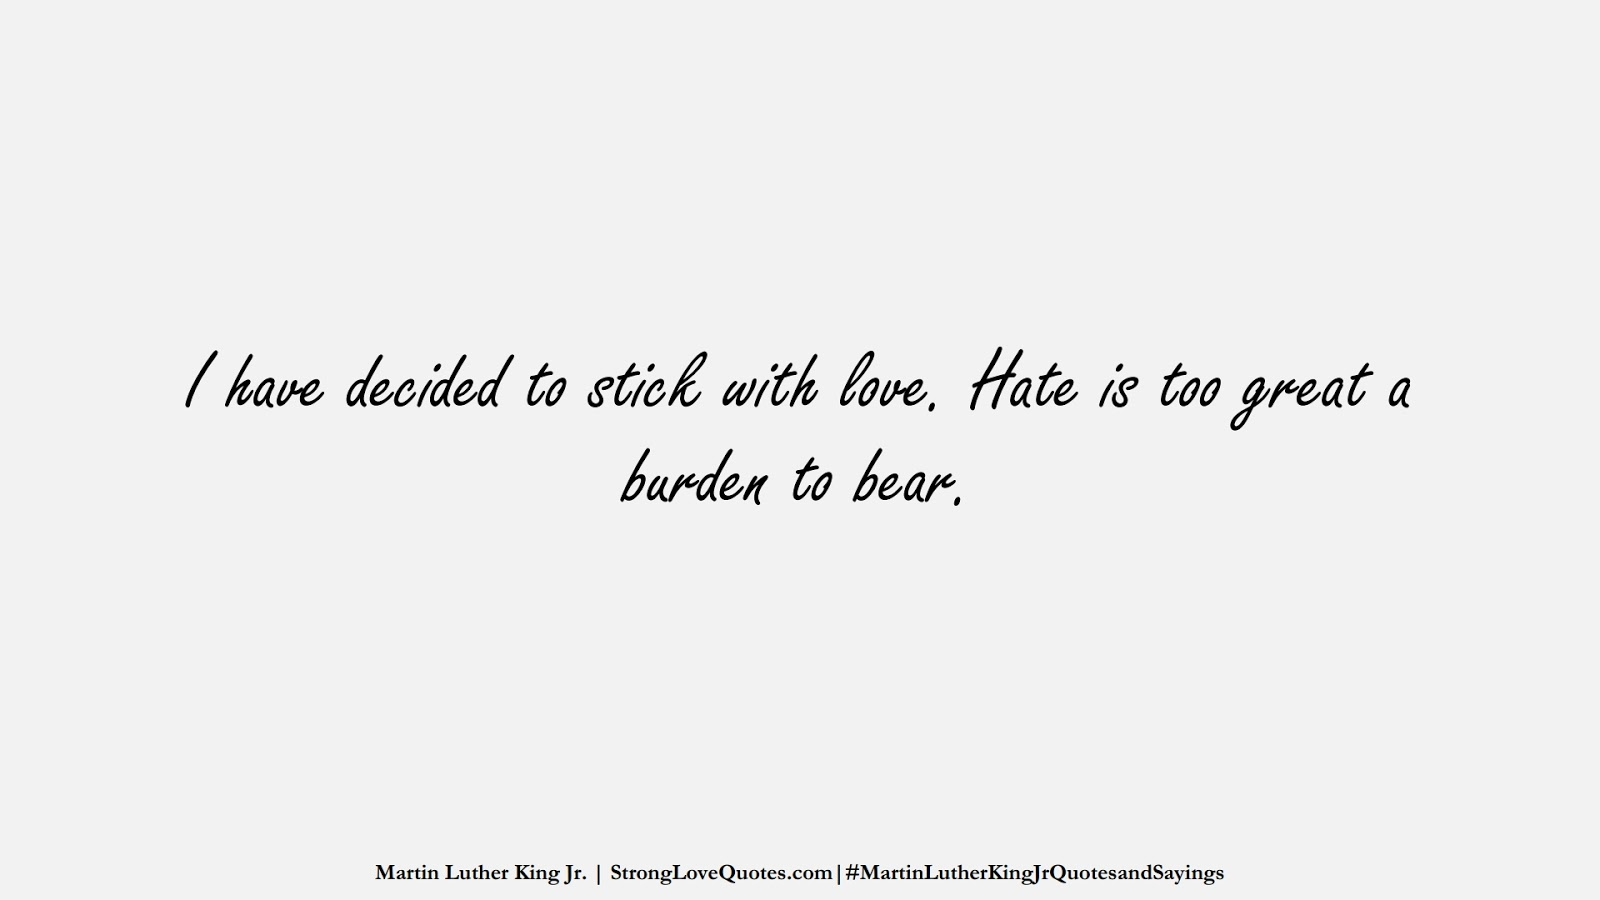 I have decided to stick with love. Hate is too great a burden to bear. (Martin Luther King Jr.);  #MartinLutherKingJrQuotesandSayings